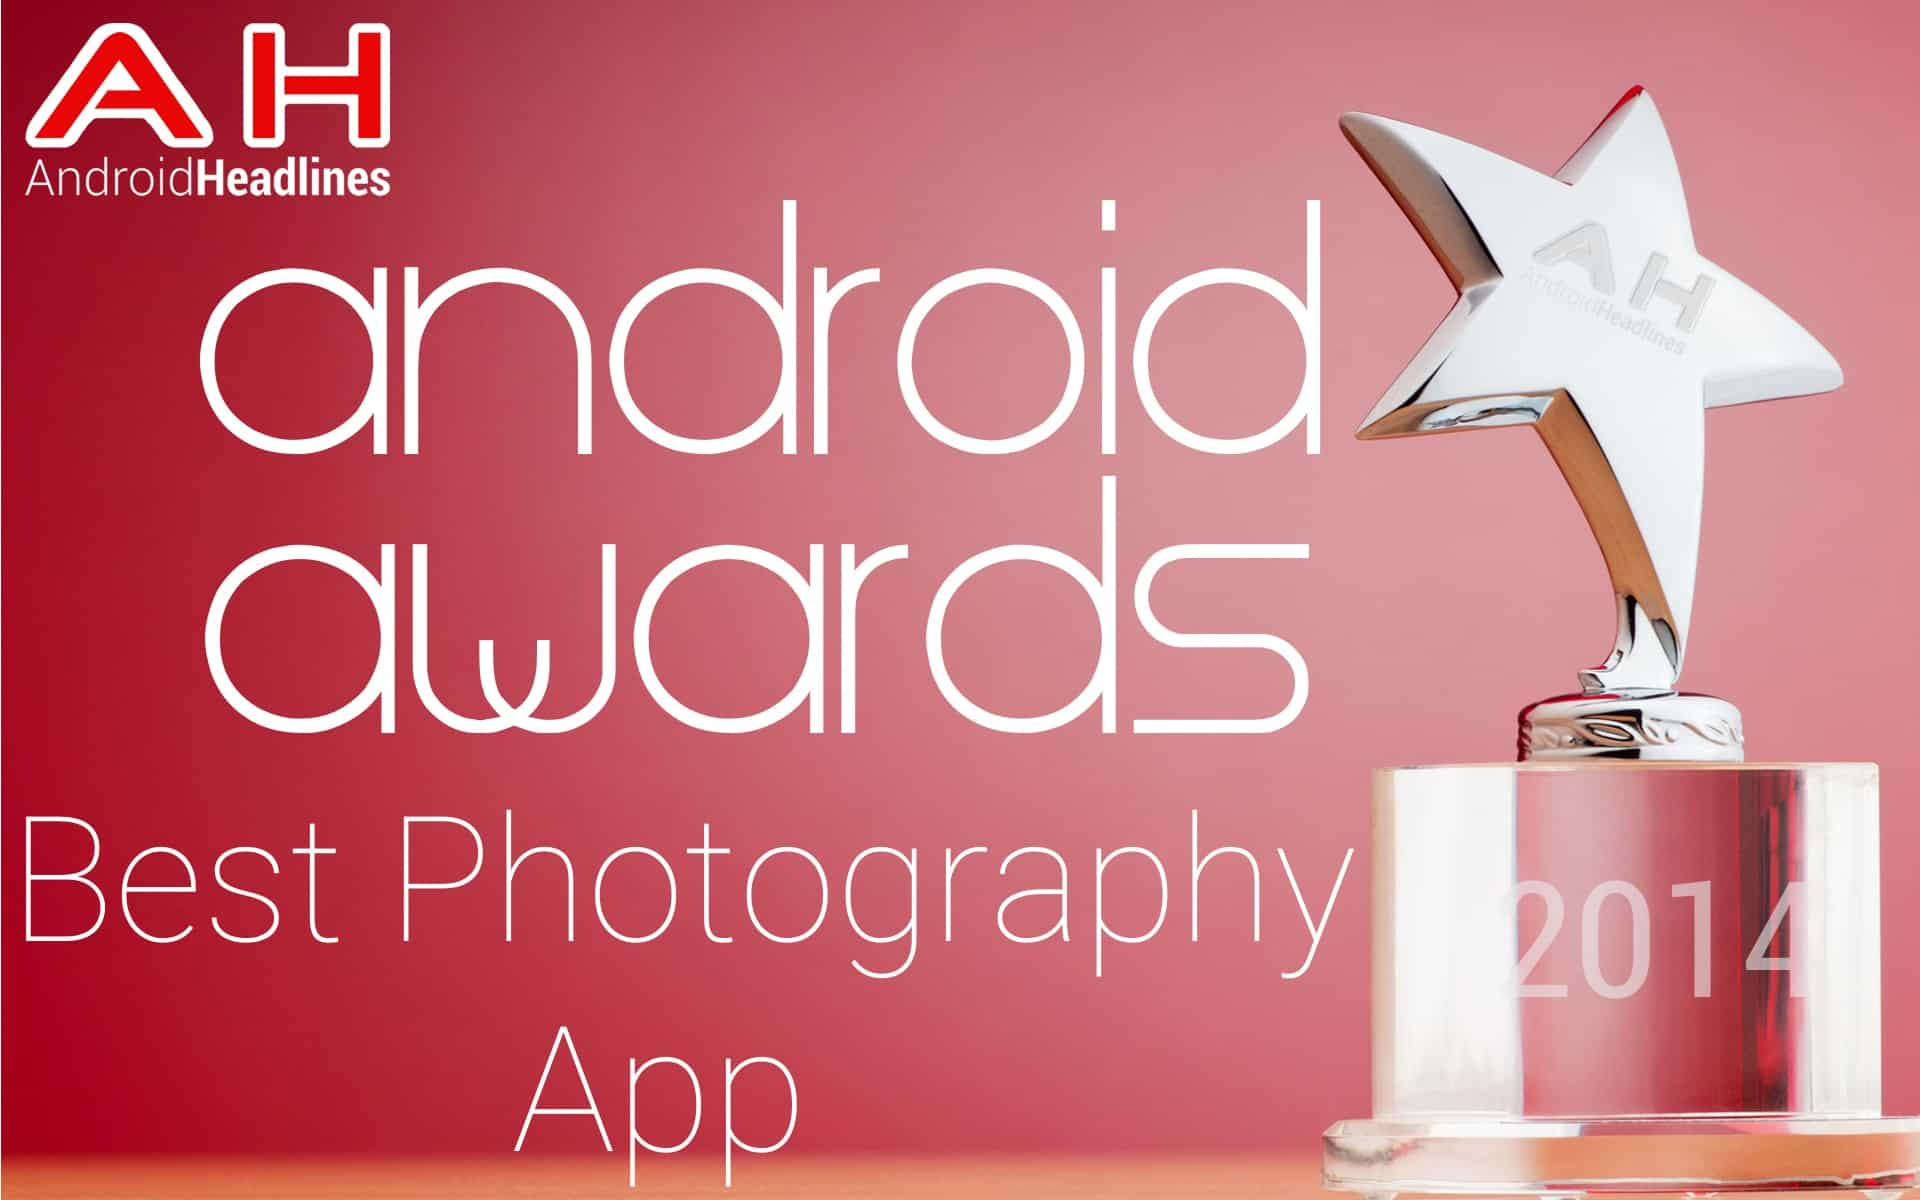 AH Awards 2015 Best Android Photography App